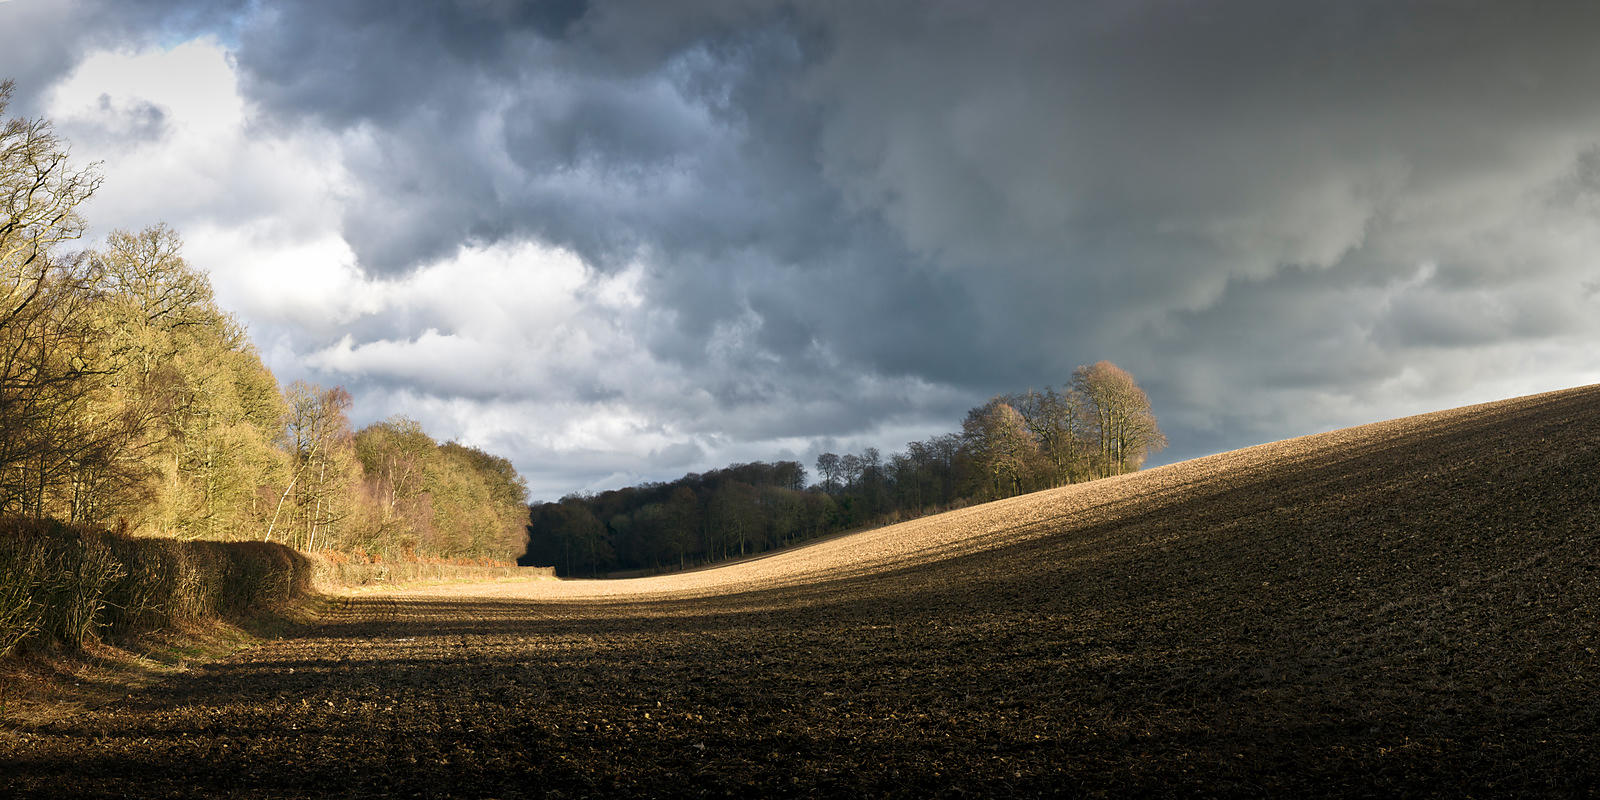 Winter field with showers